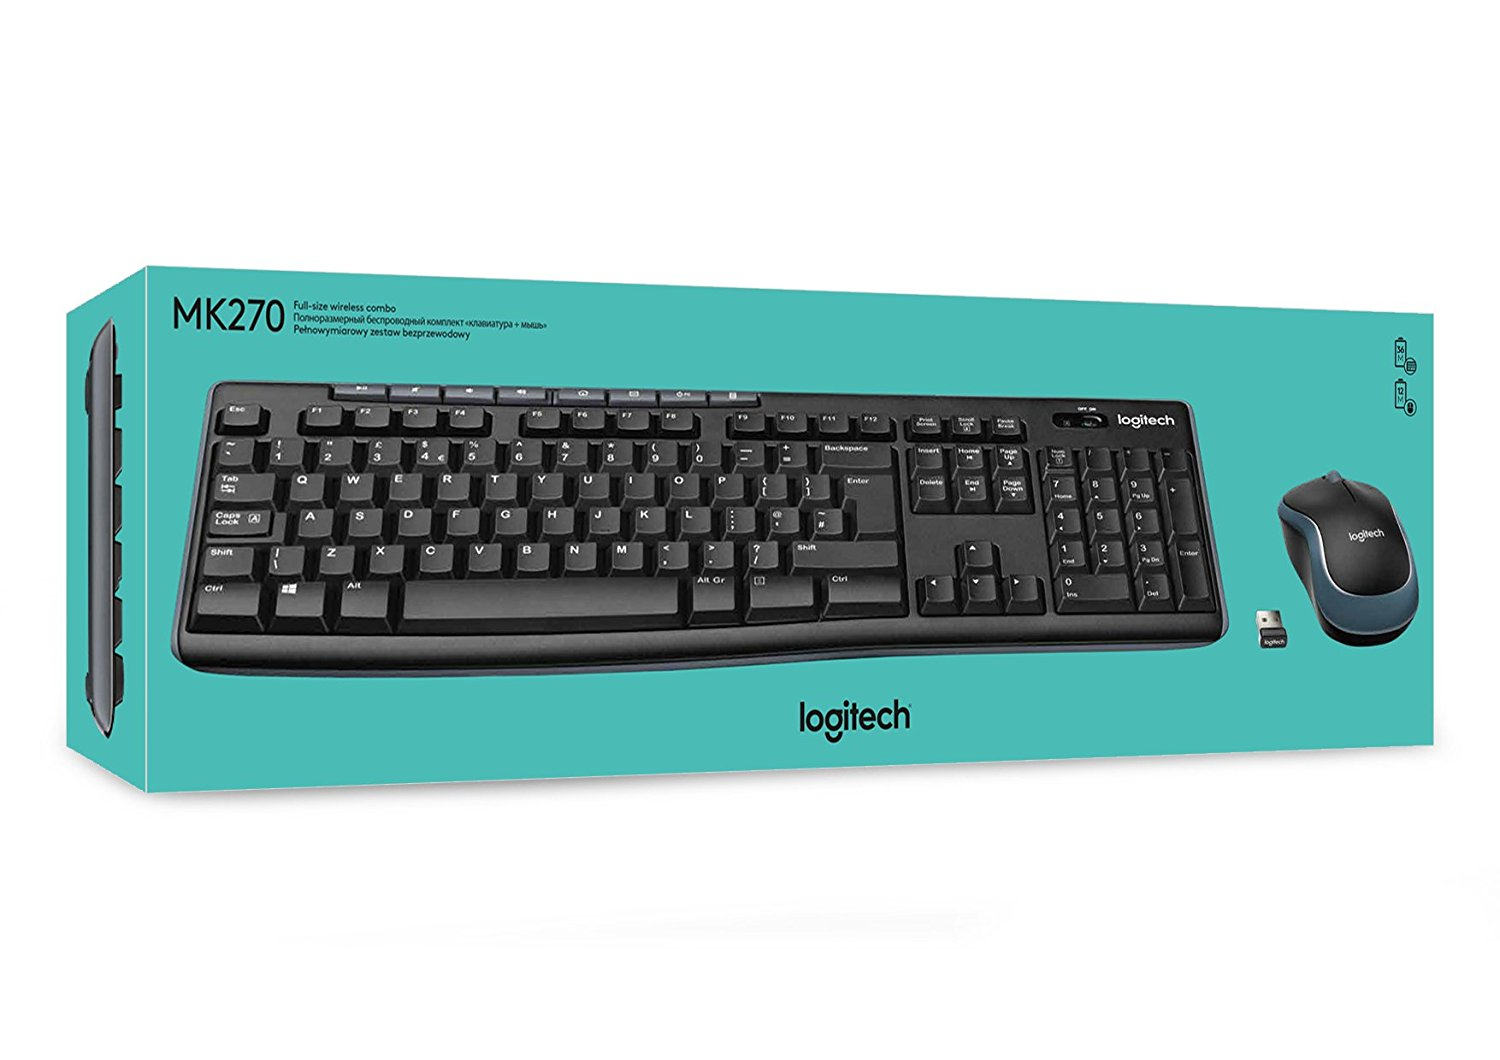 https://bonetel.co.rs/media/logitech-mk270aaaa.jpg